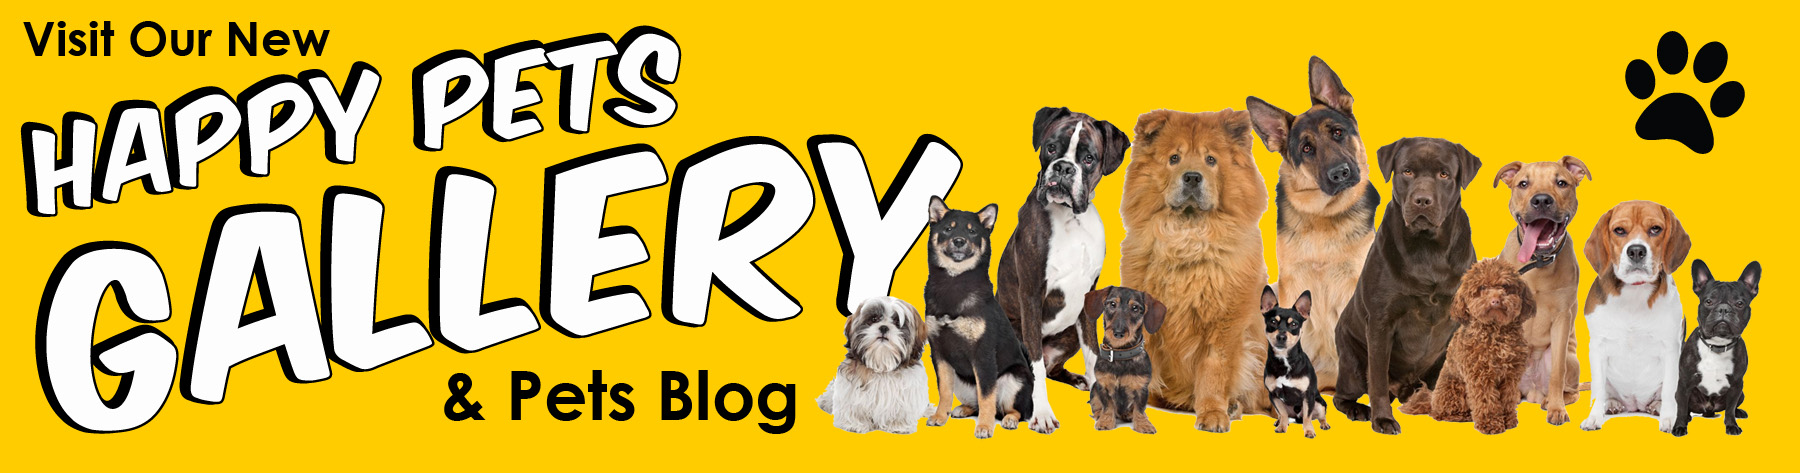 Visit Our New Happy Pets Gallery